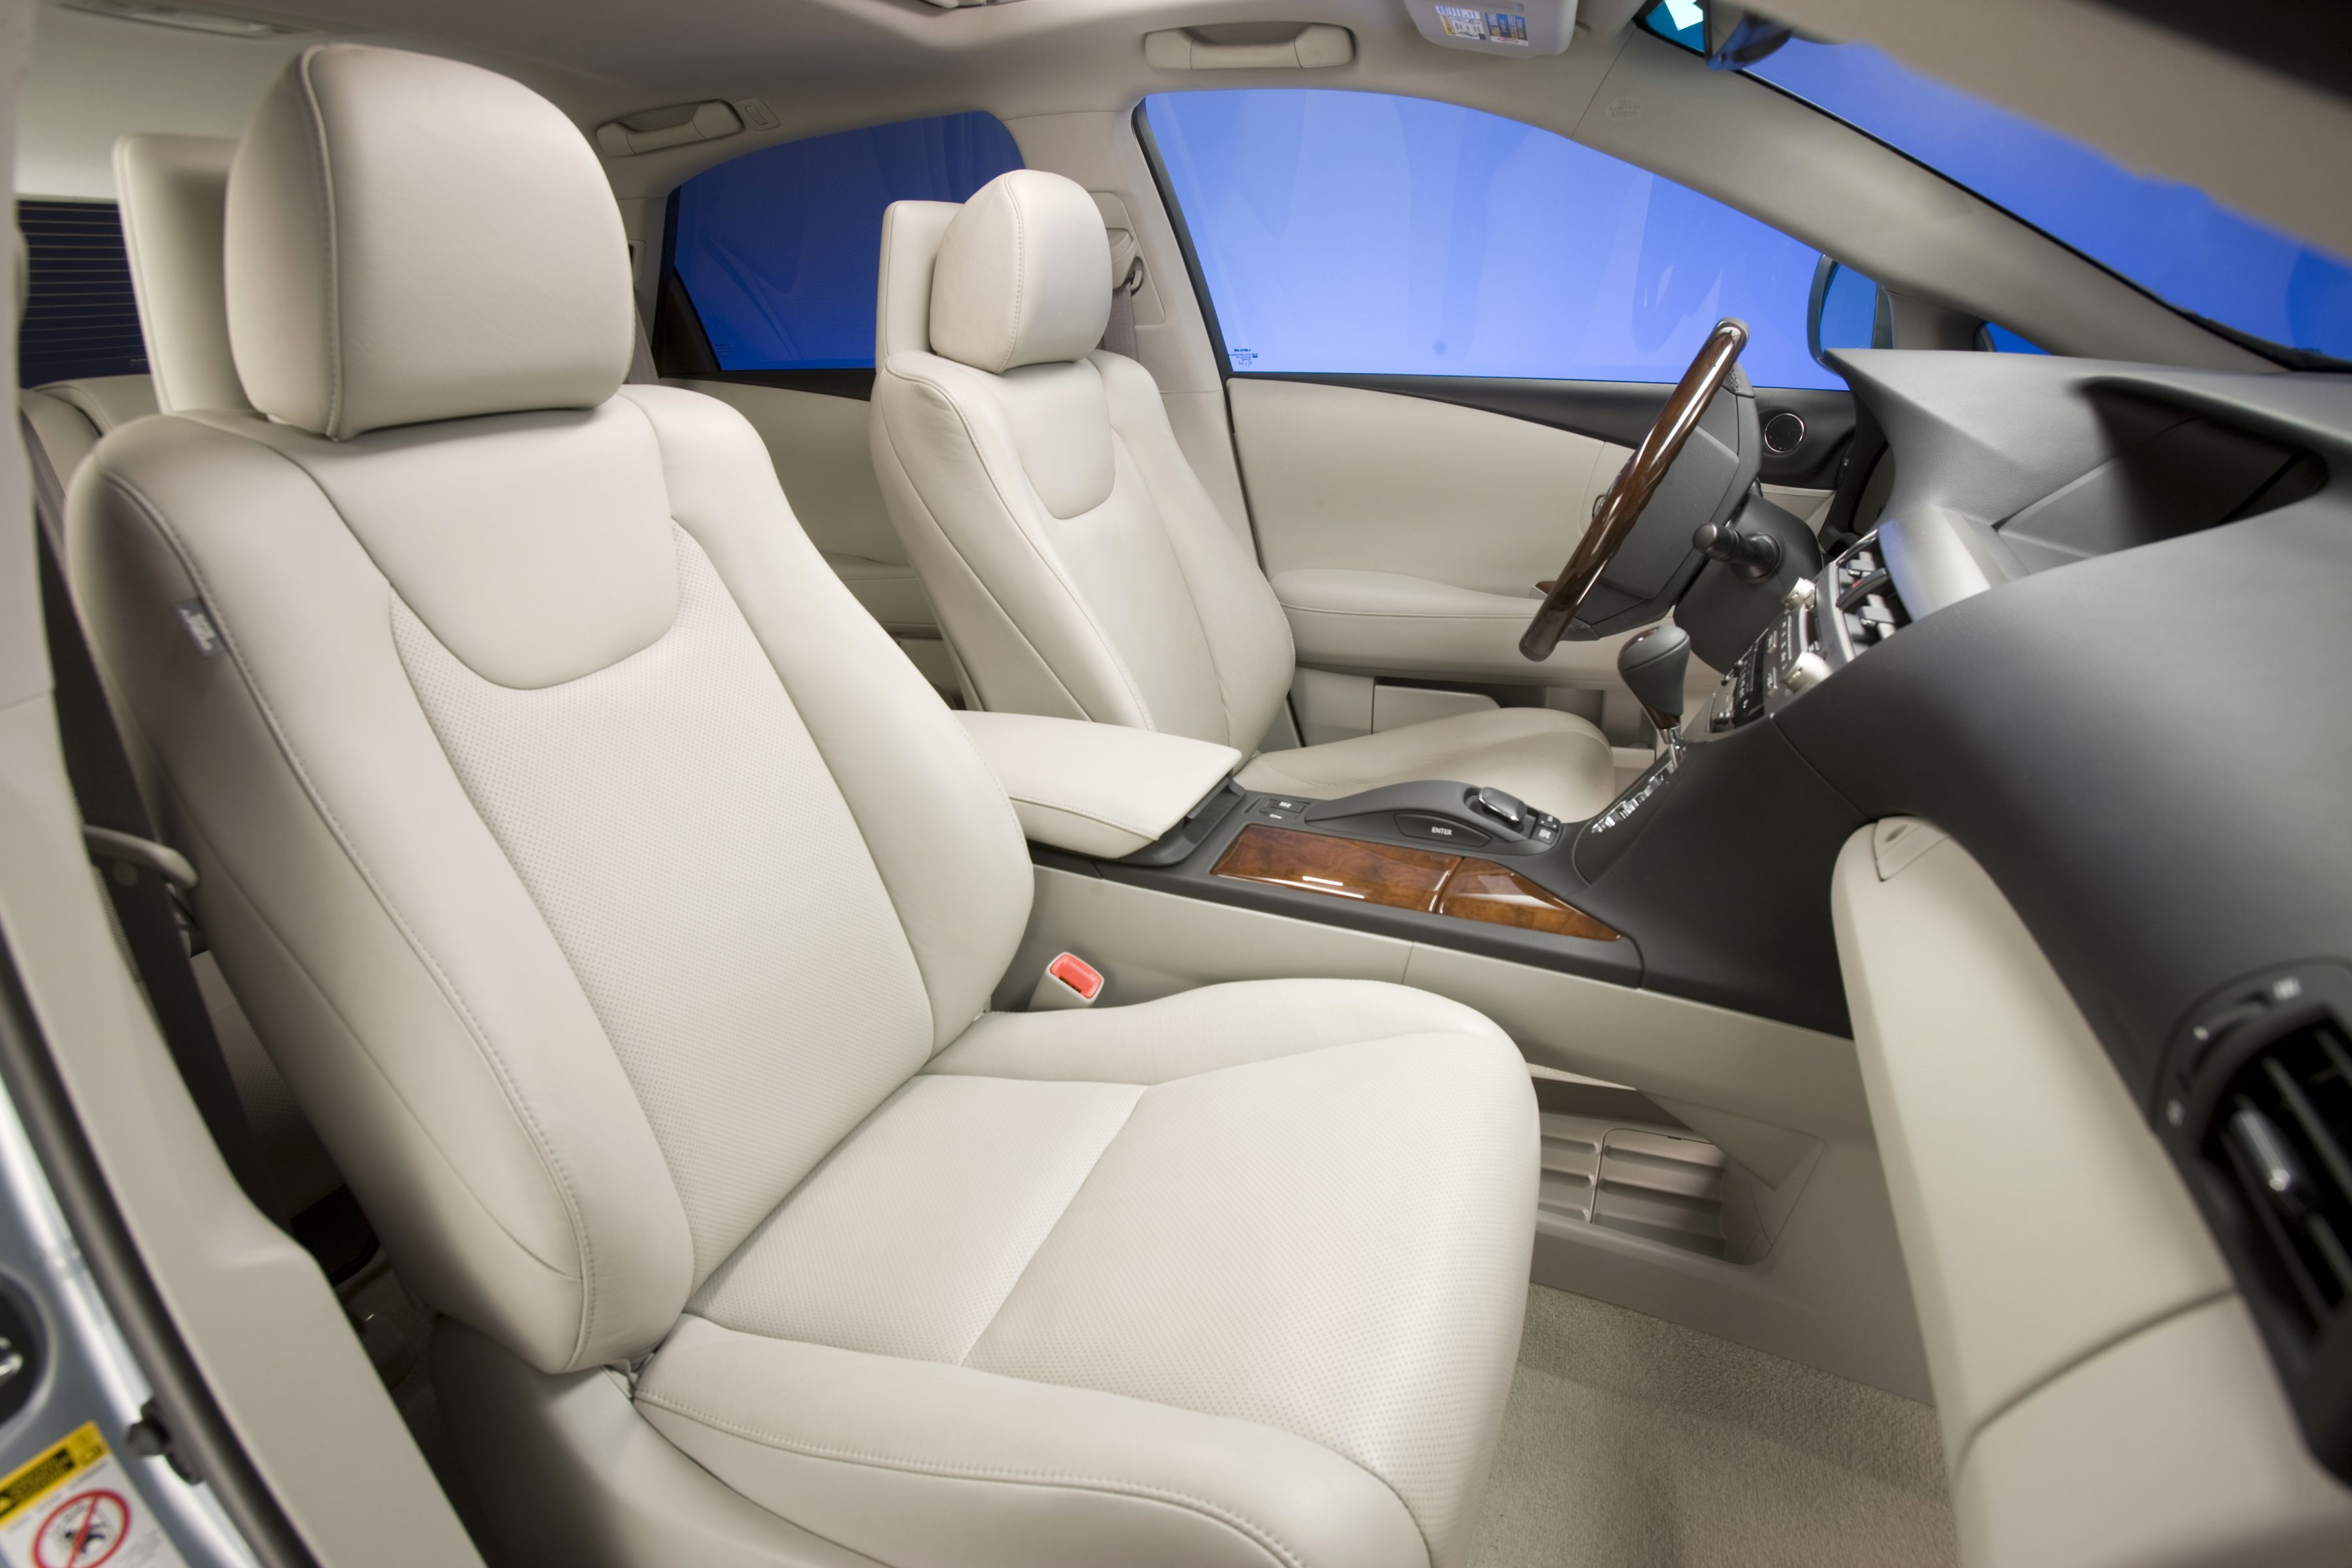 The New 2010 Lexus RX 350 The Best Just Got Better REVIEW and